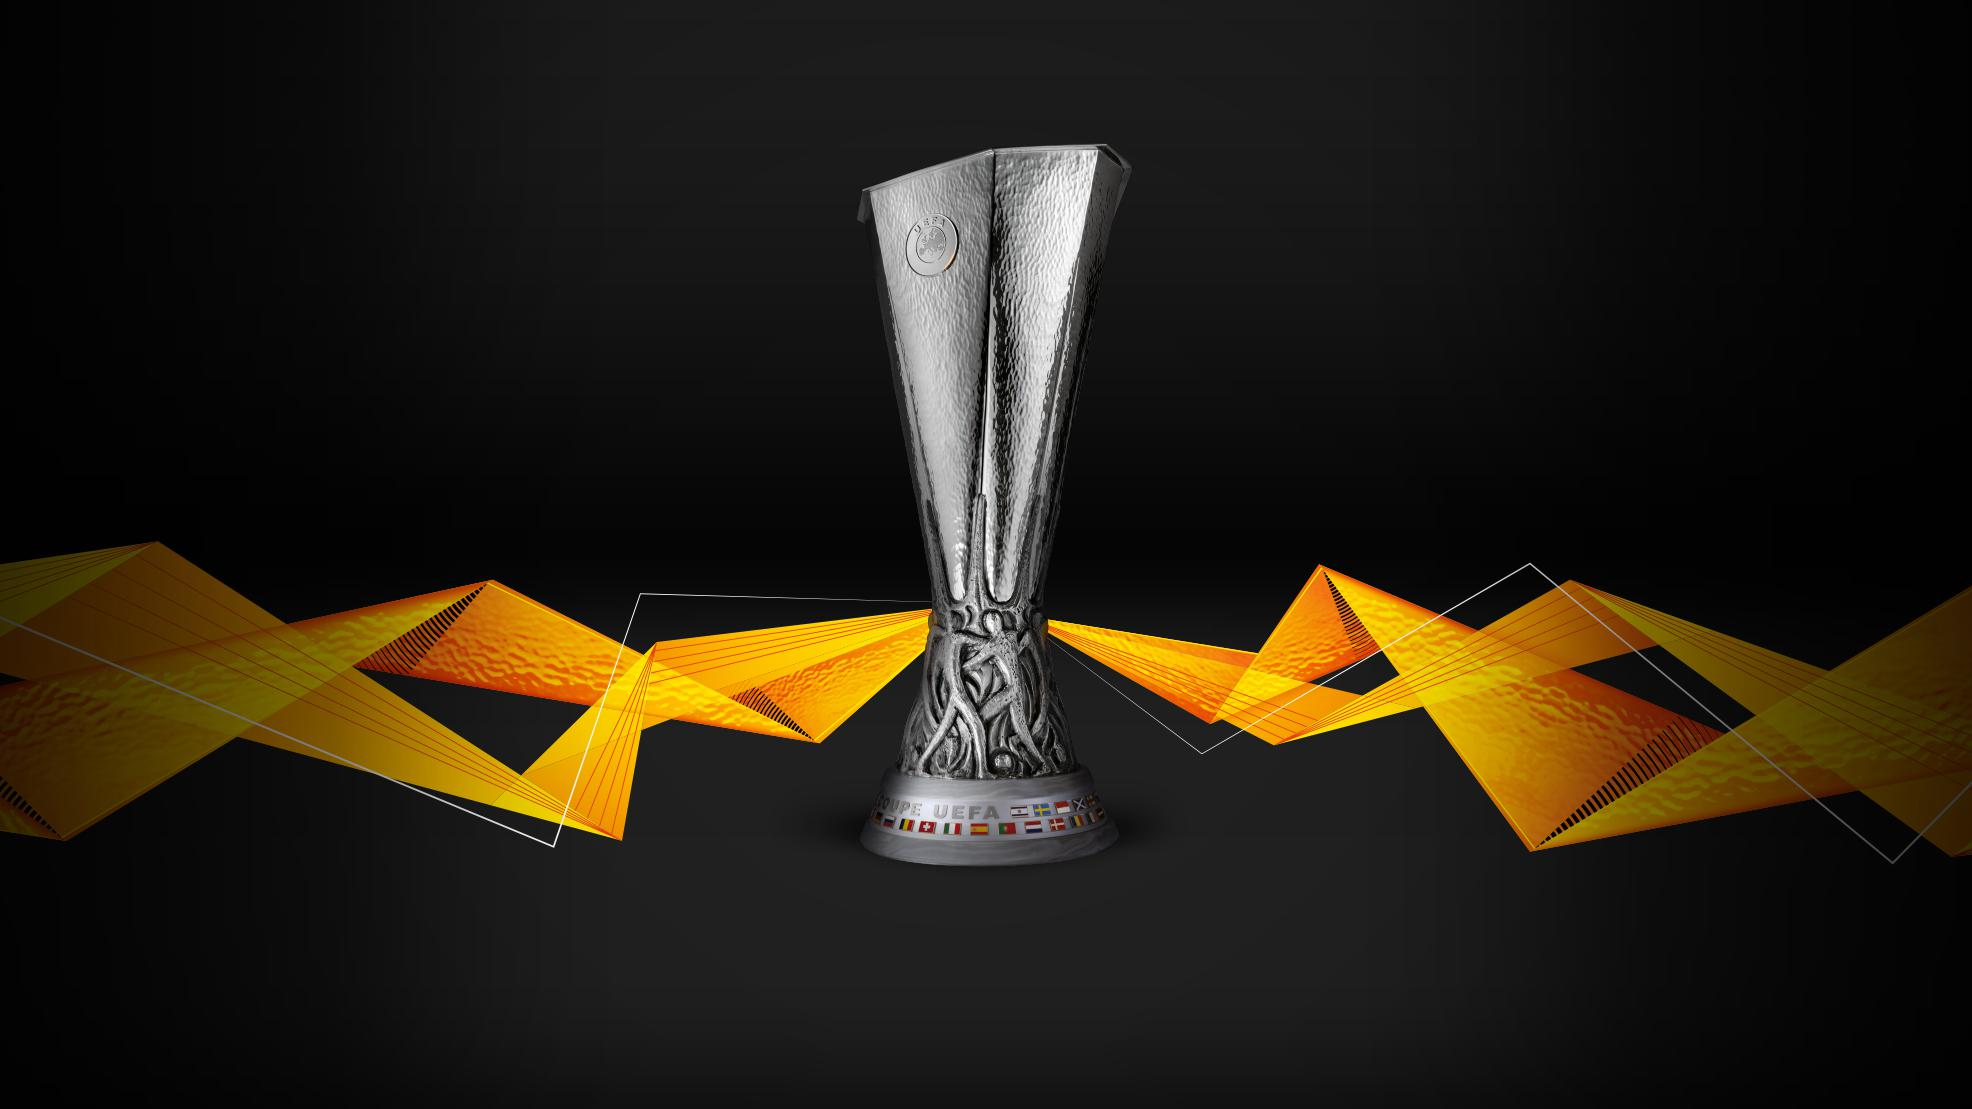 europa league to resume on 5 august final on 21 august uefa europa league uefa com uefa europa league